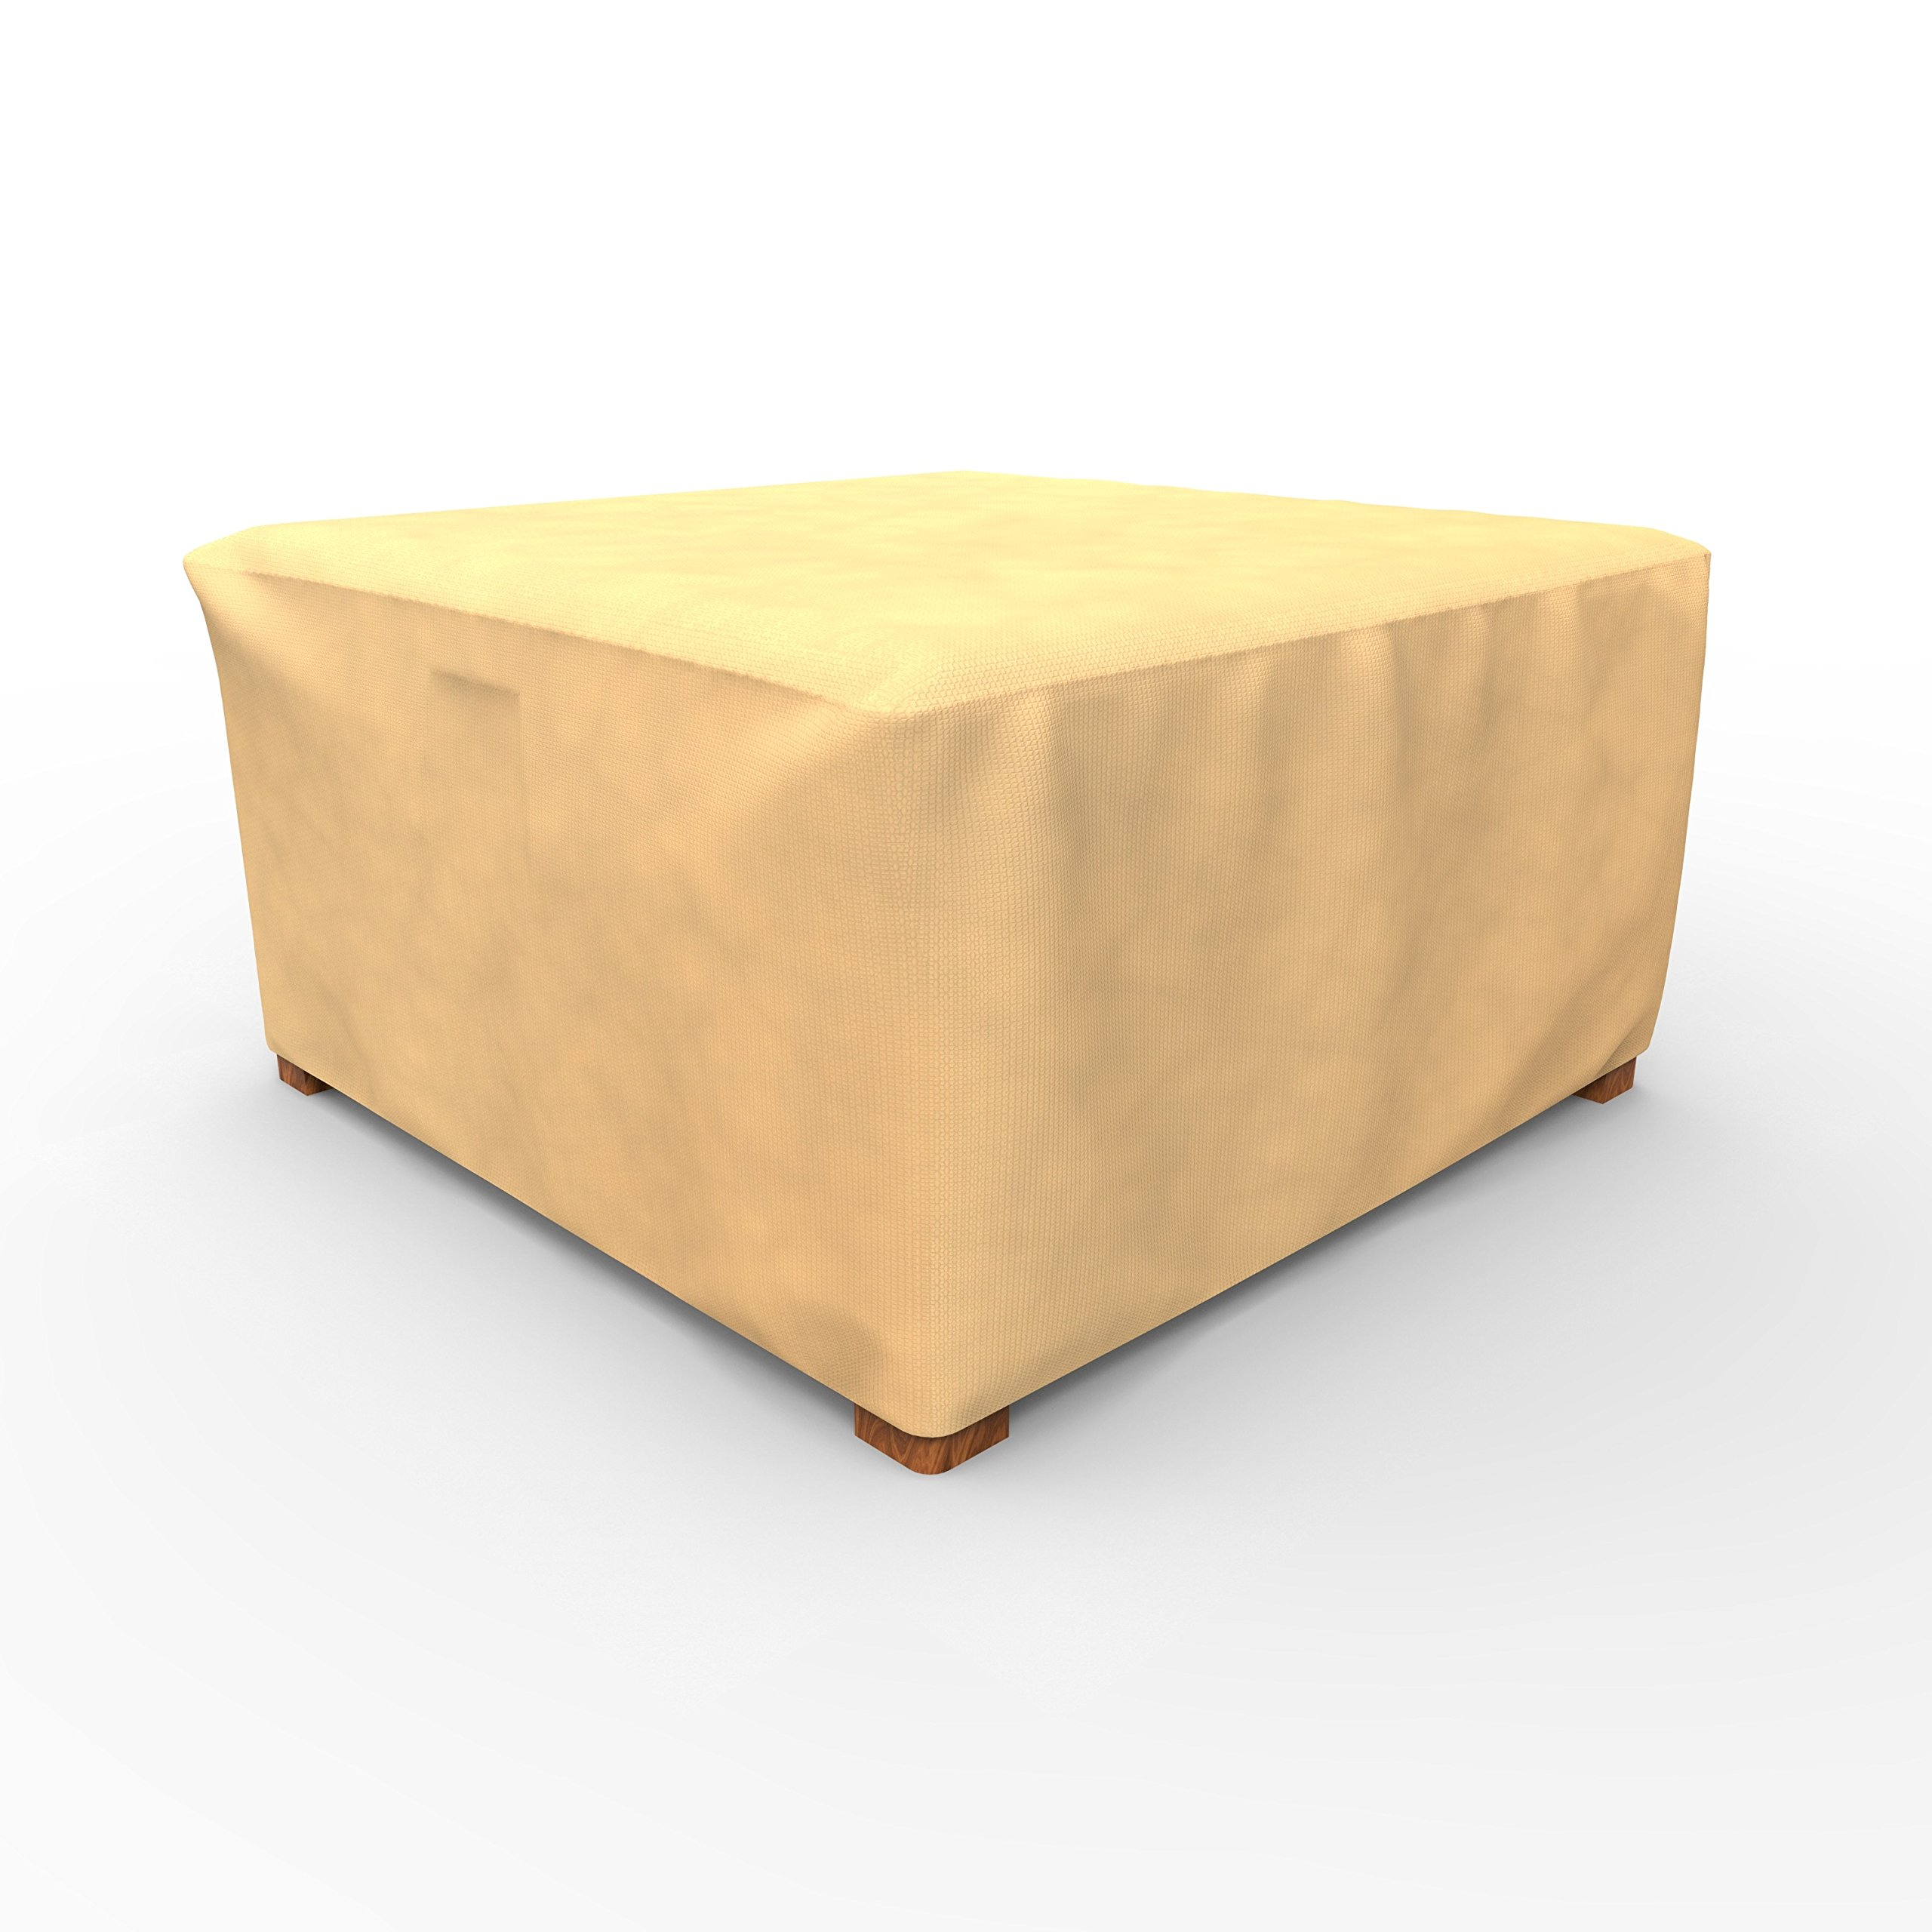 EmpirePatio X-Large Ottoman Covers 36 in Wide - Nutmeg